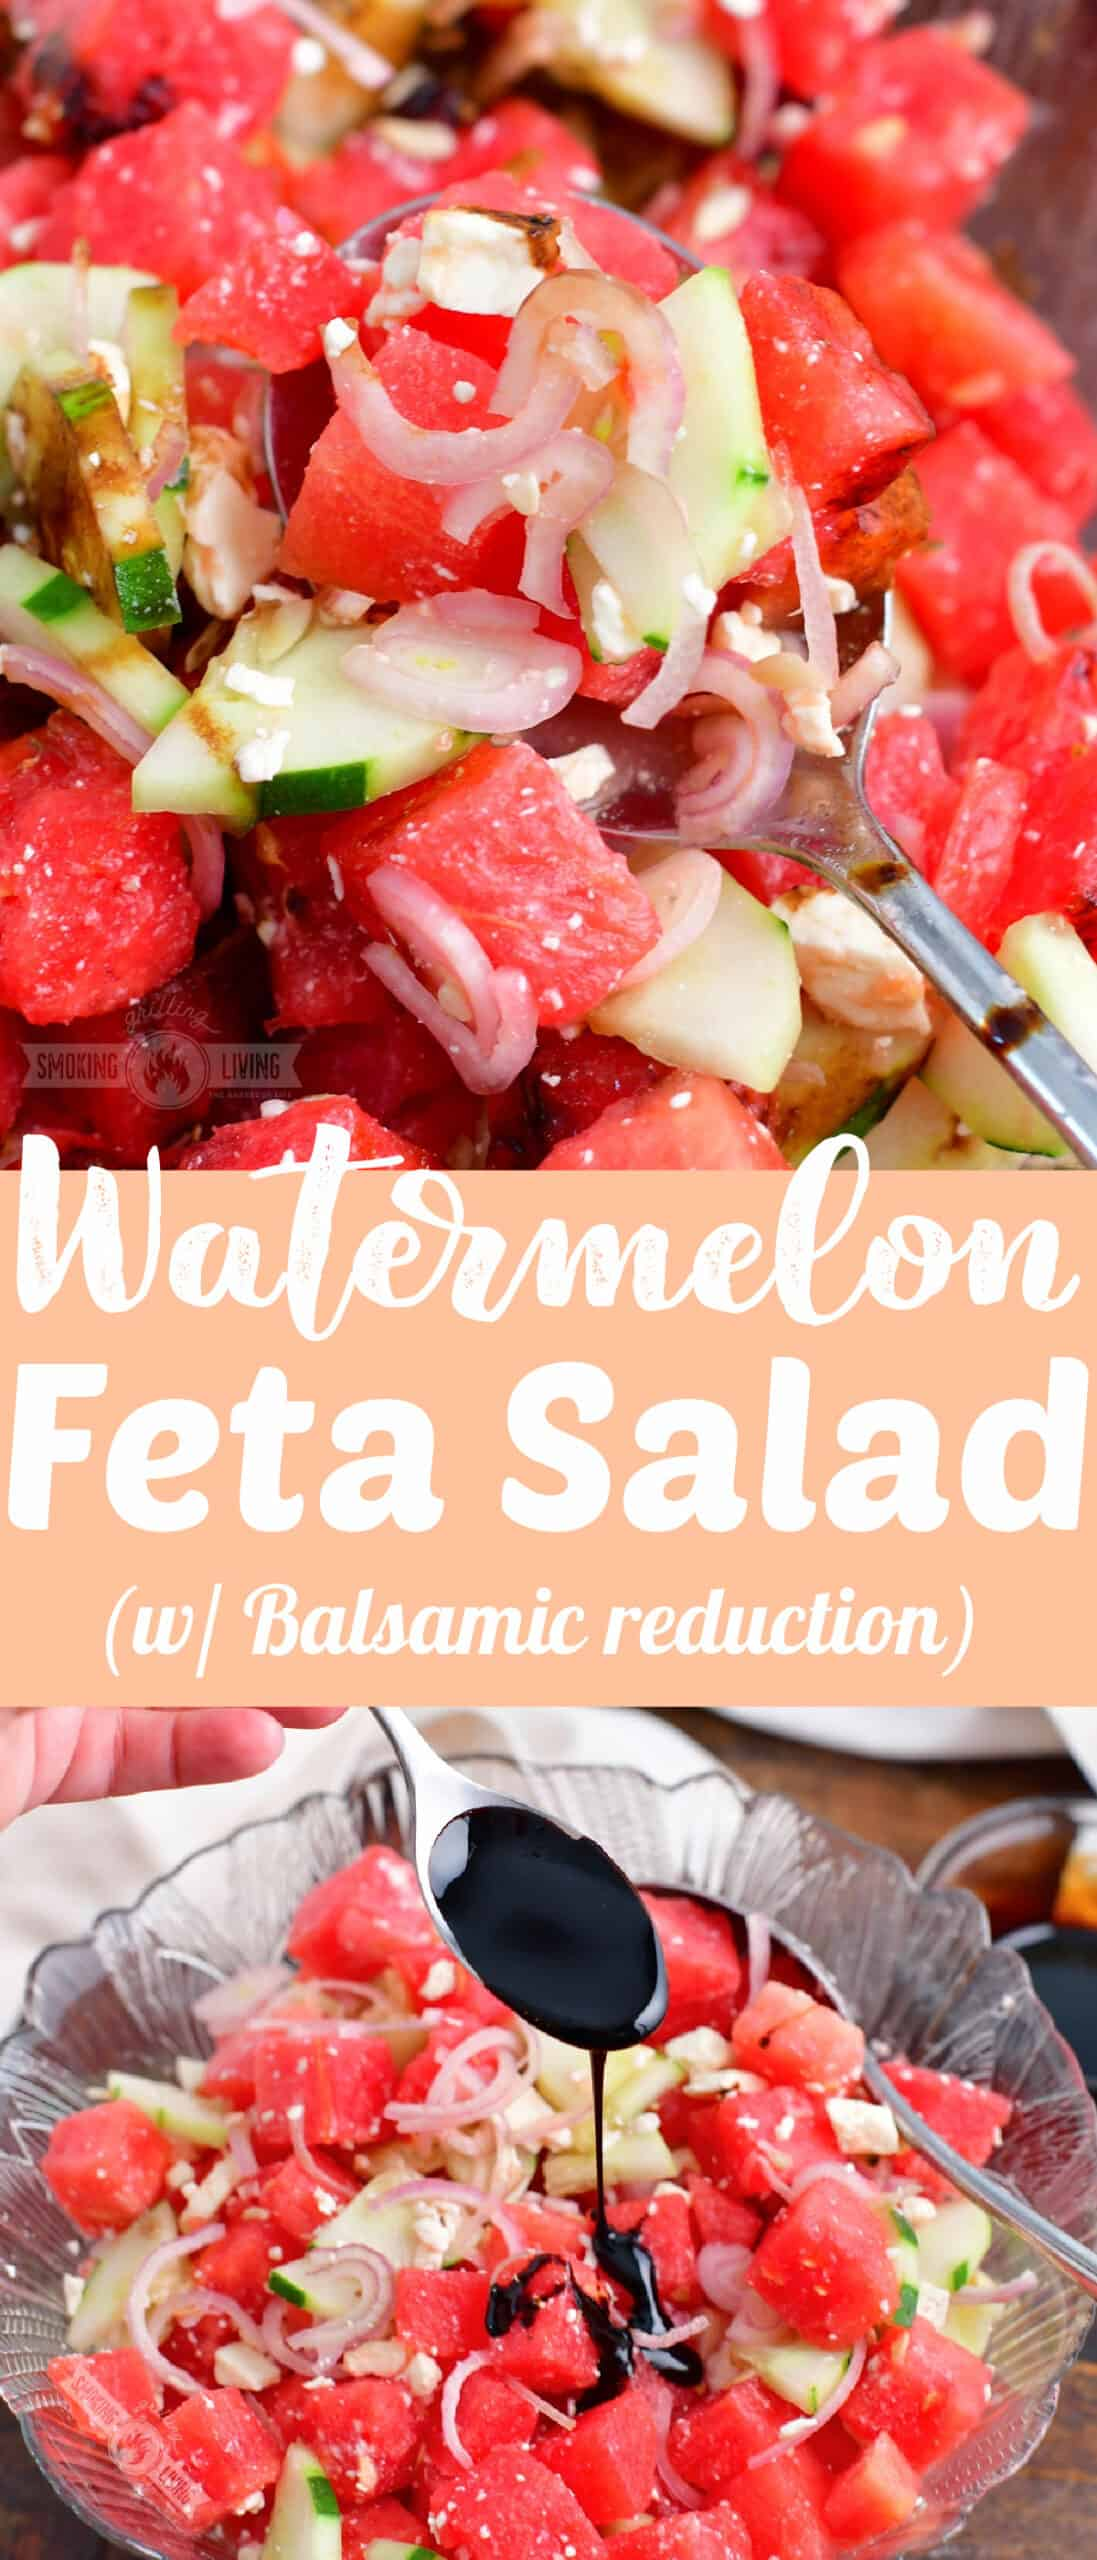 title collage with two images of watermelon salad and a recipe title in the middle